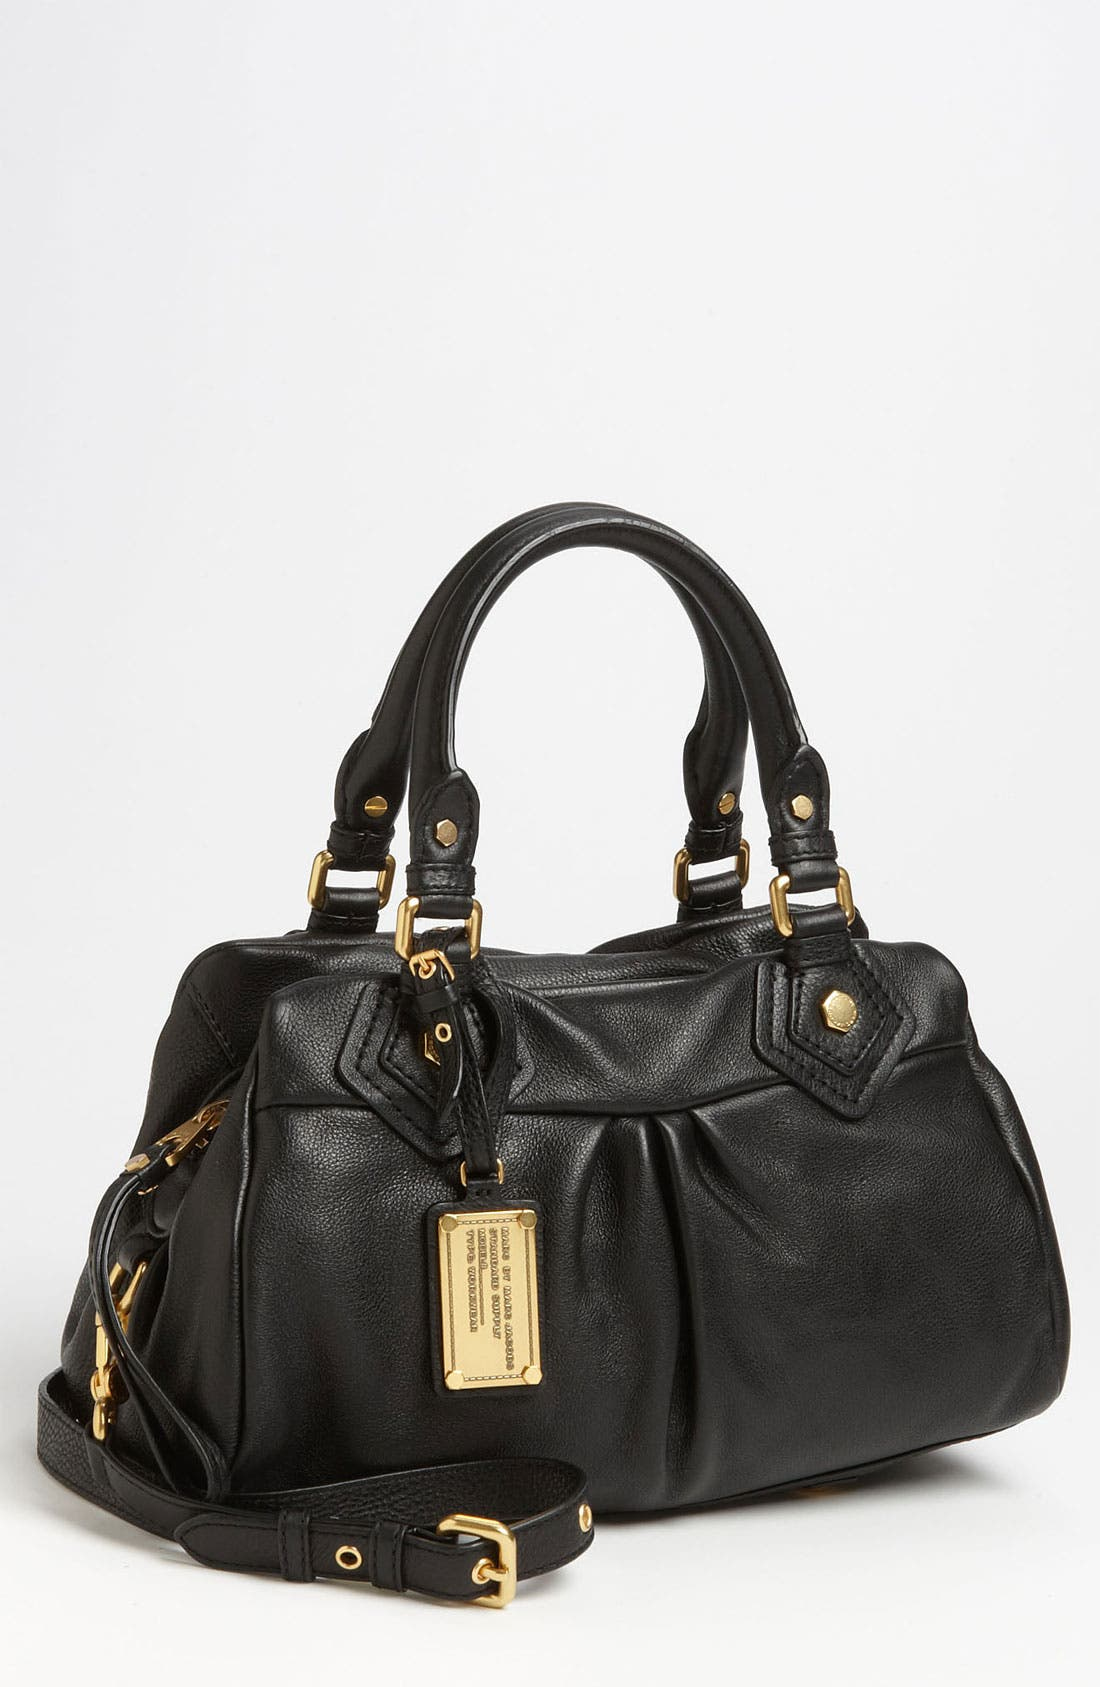 MARC BY MARC JACOBS 'Classic Q - Baby Groovee' Leather Satchel,                         Main,                         color, 002